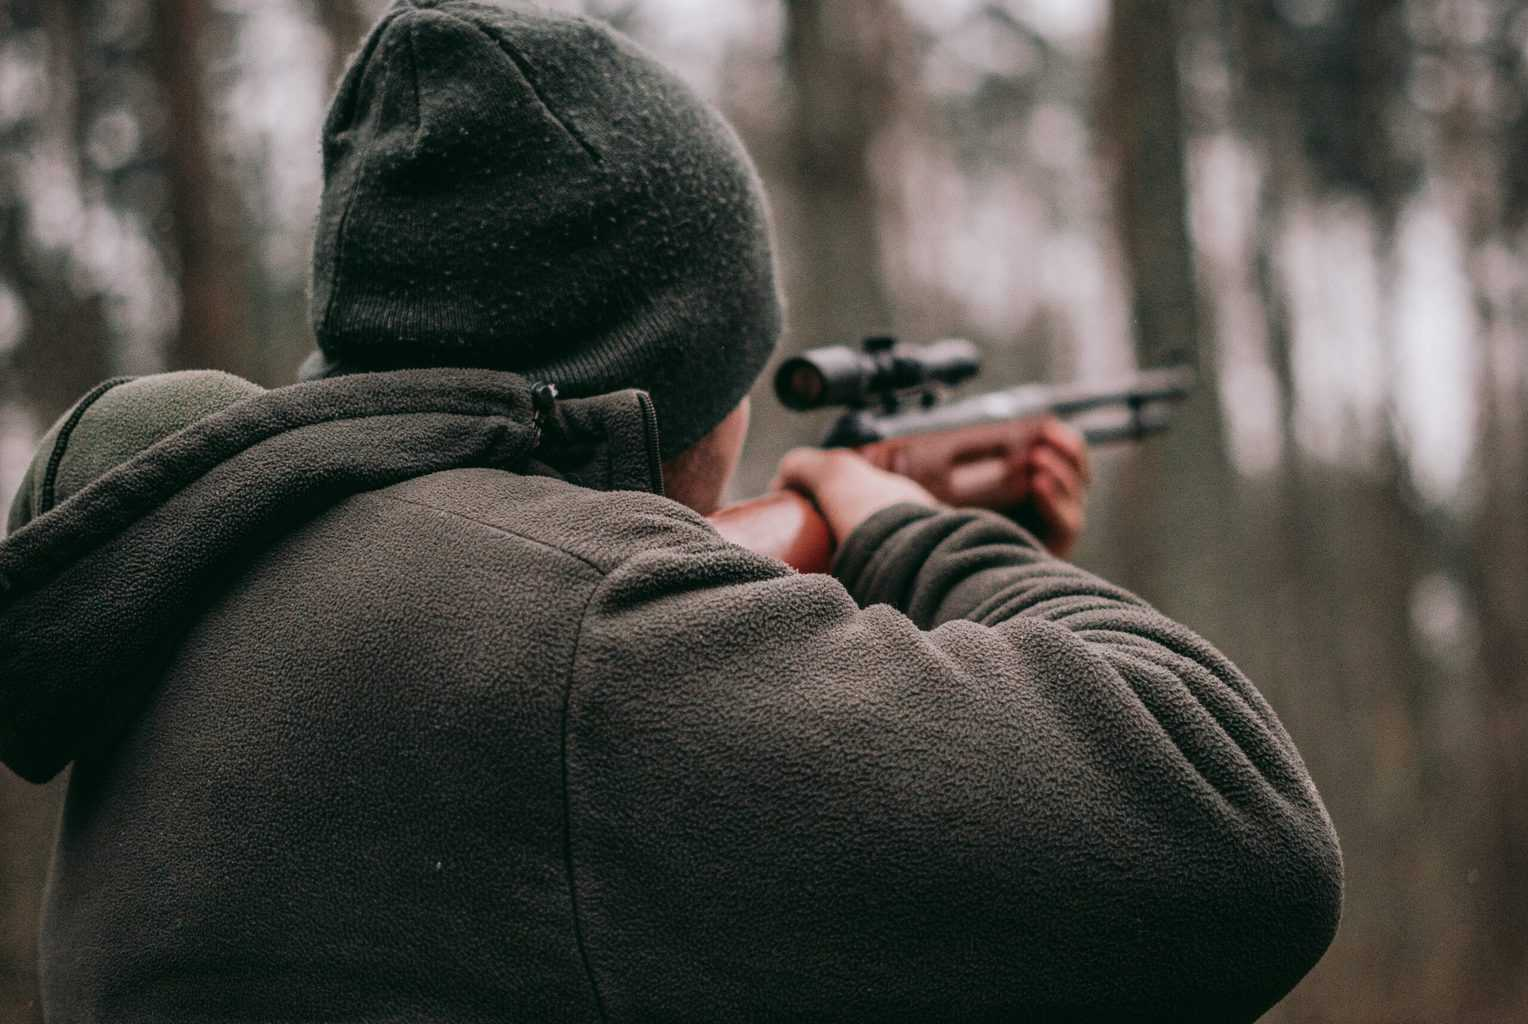 Rear view of a person aiming a sniper hunting rifle